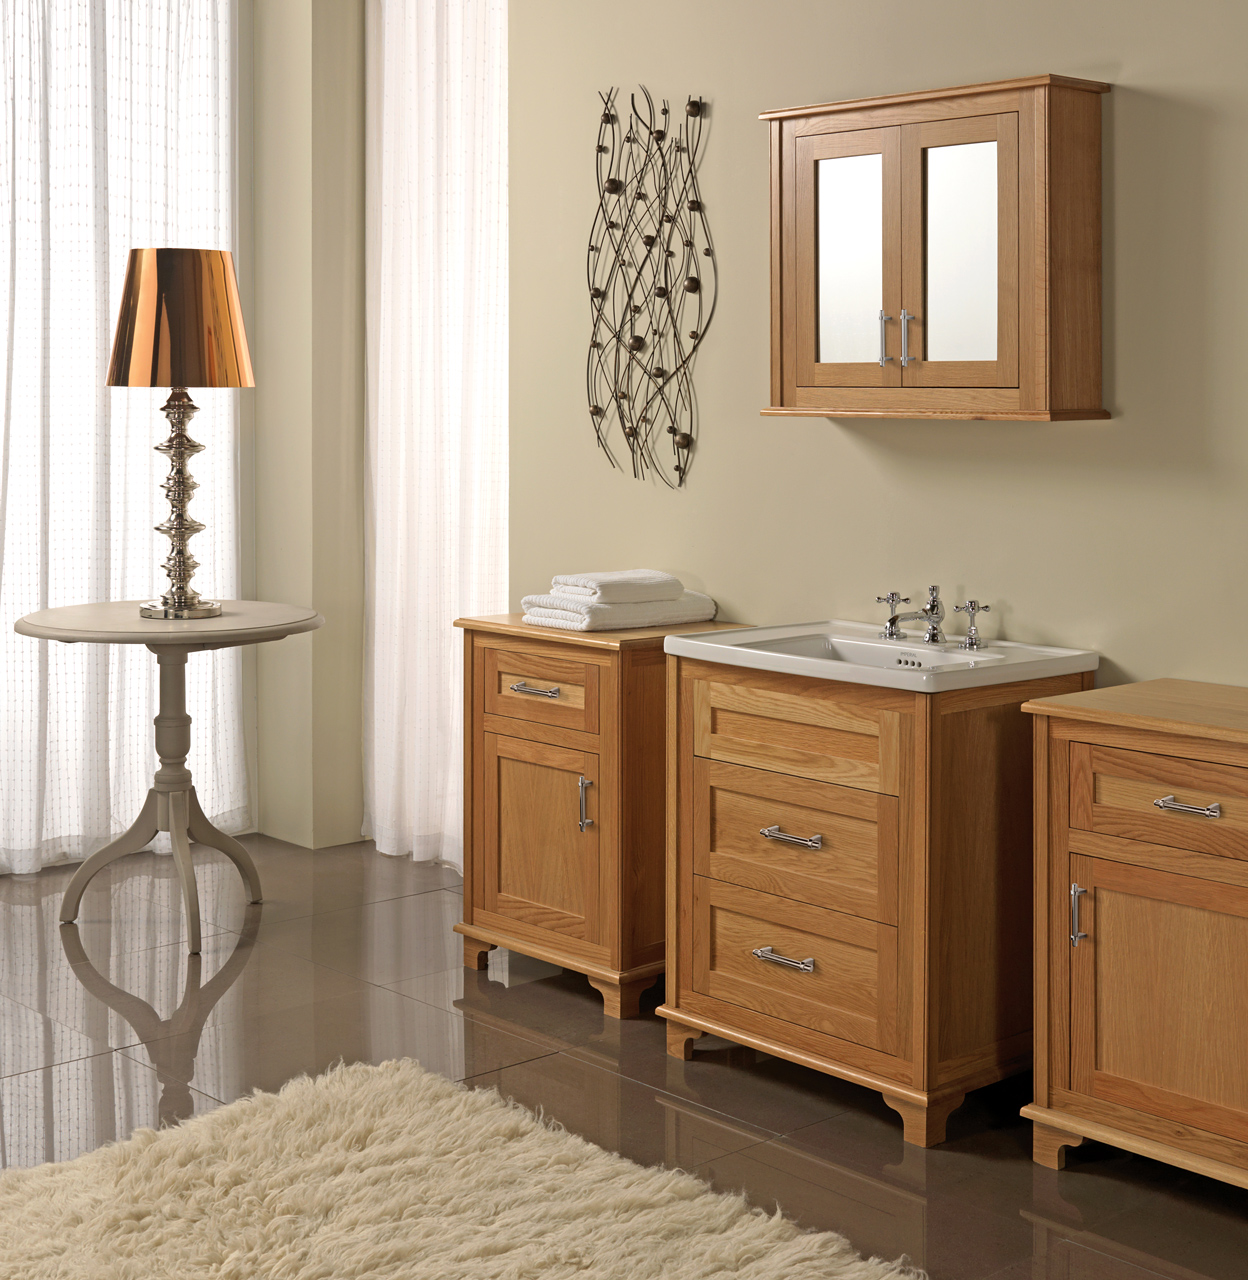 Classic Bathrooms: Imperial Bathrooms - Oak-Set-main